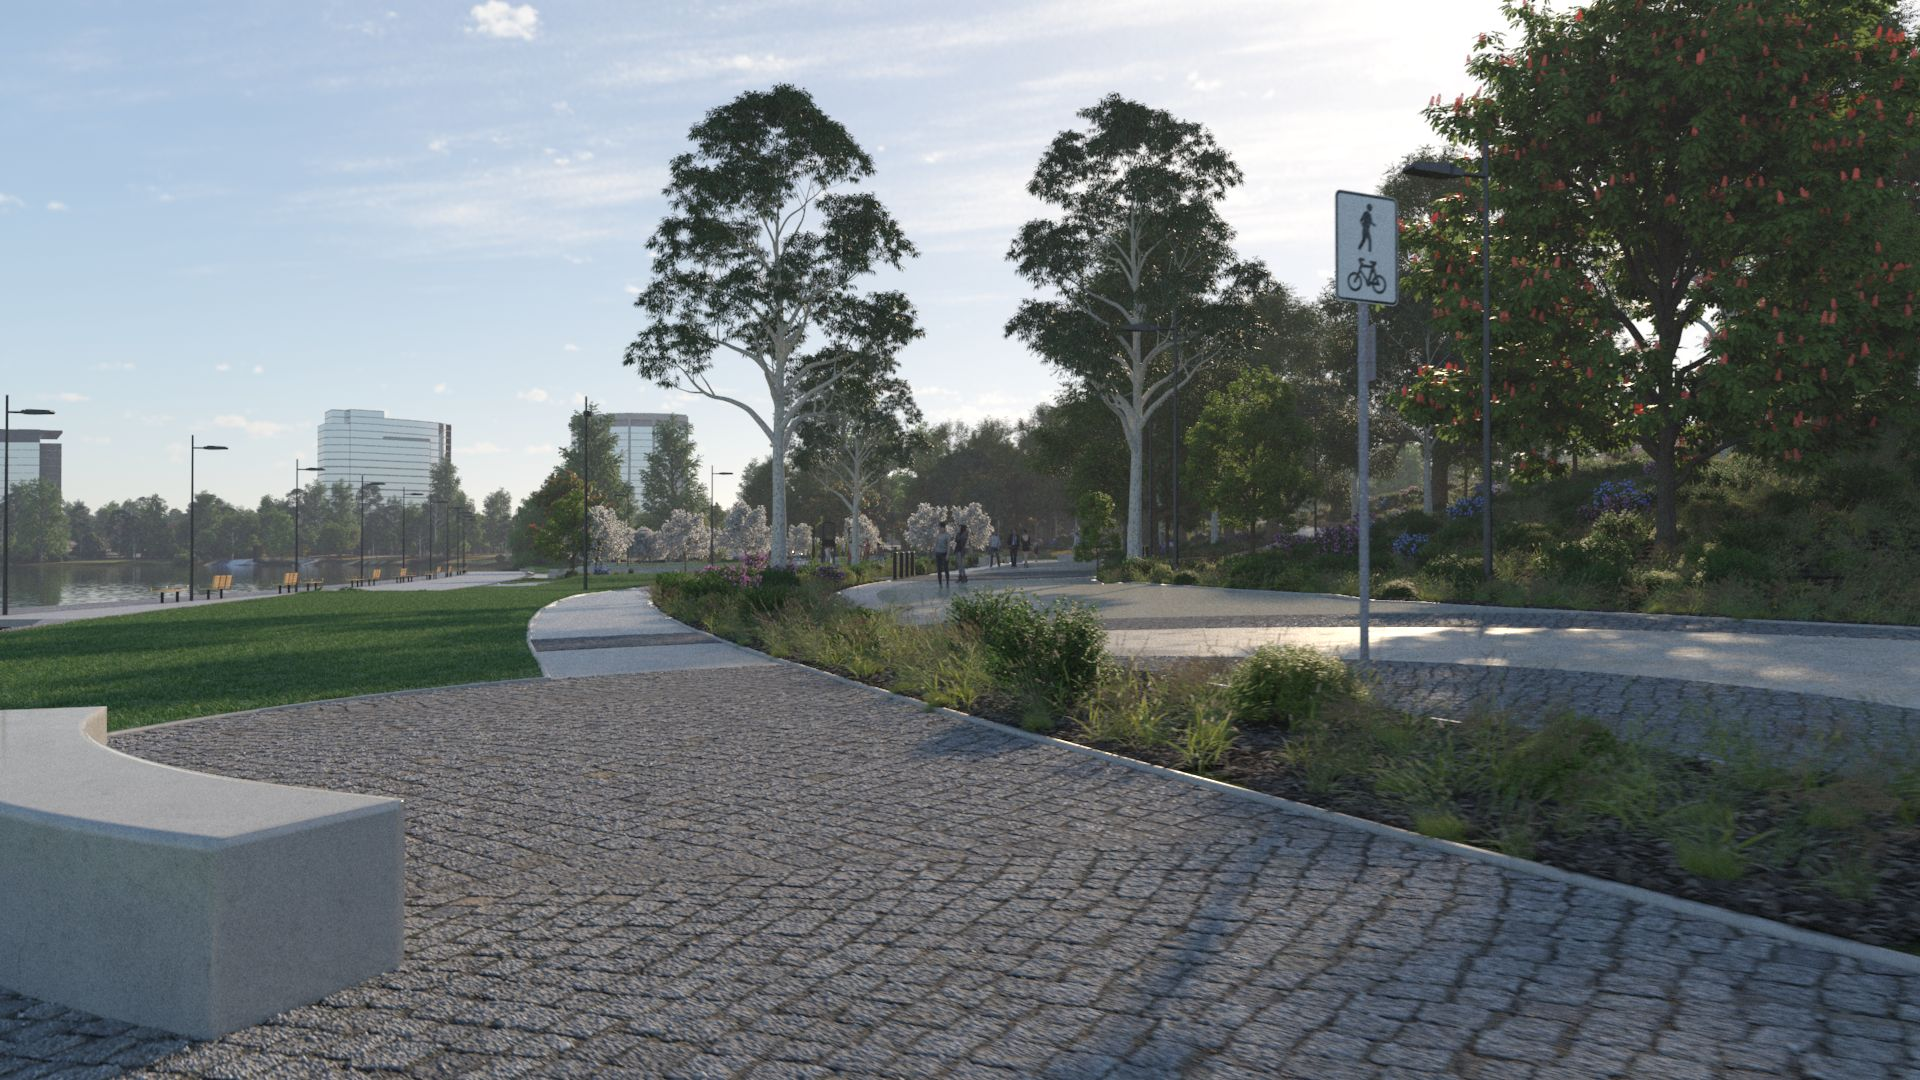 3D image of the interior paths and bench of the new park